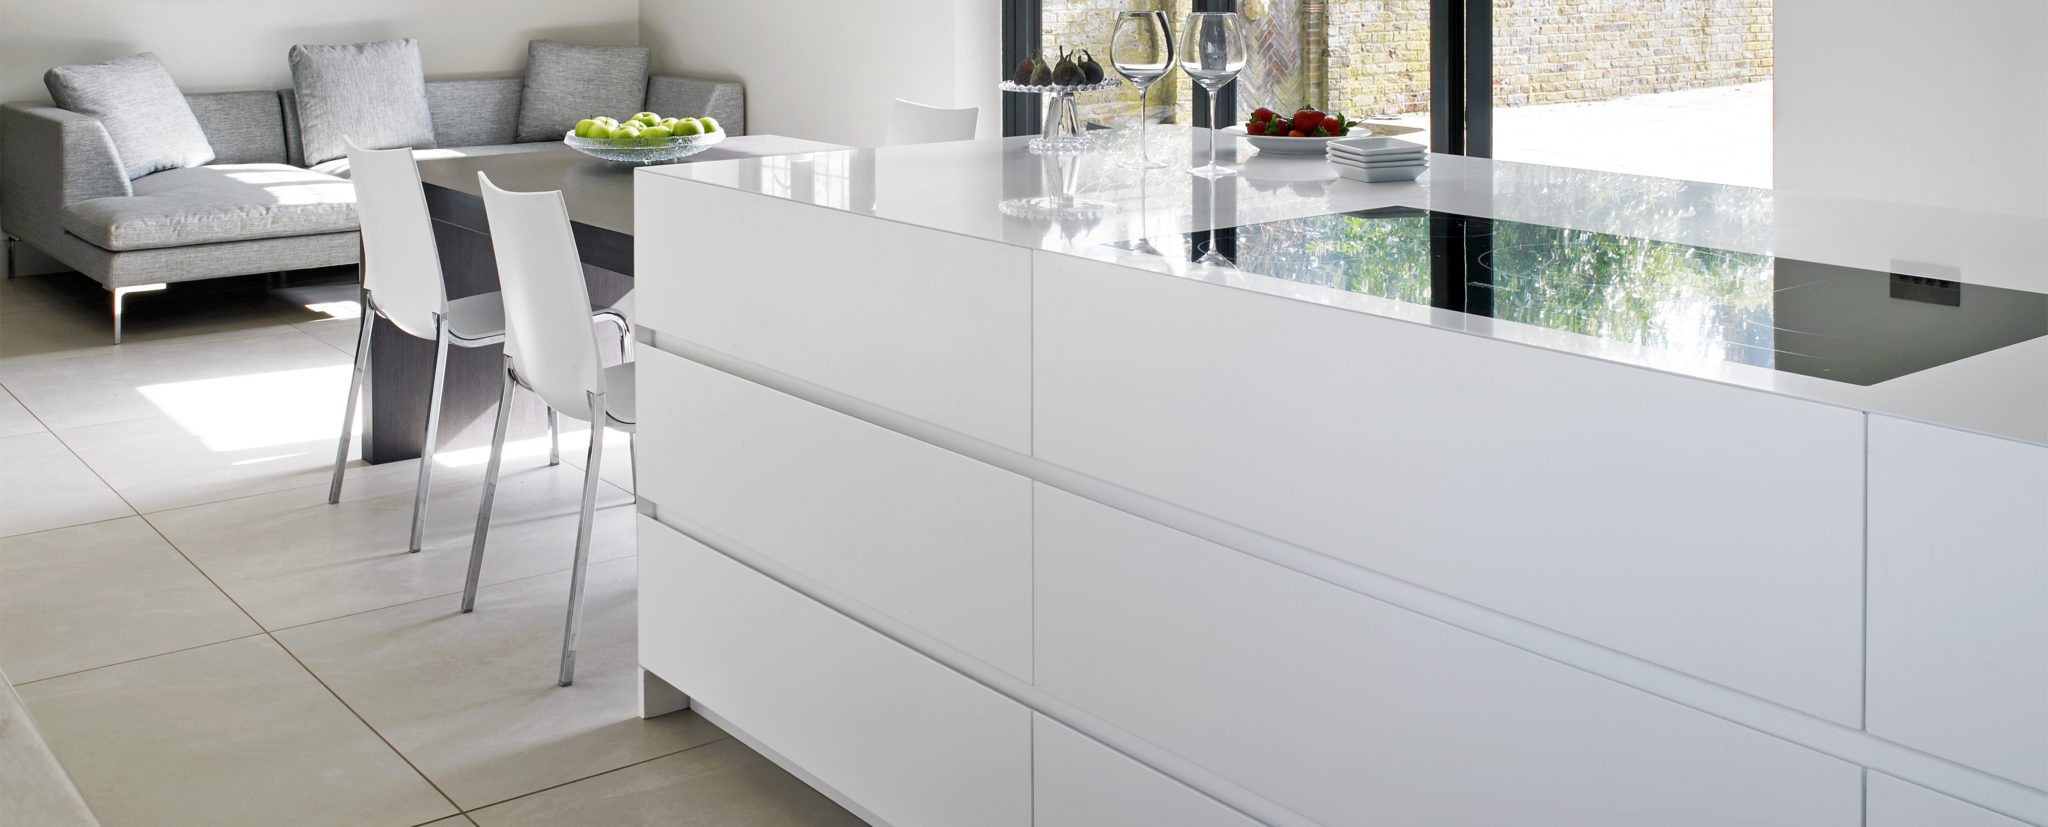 White Contemporary kitchen island with integrated induction hob and attached dining table